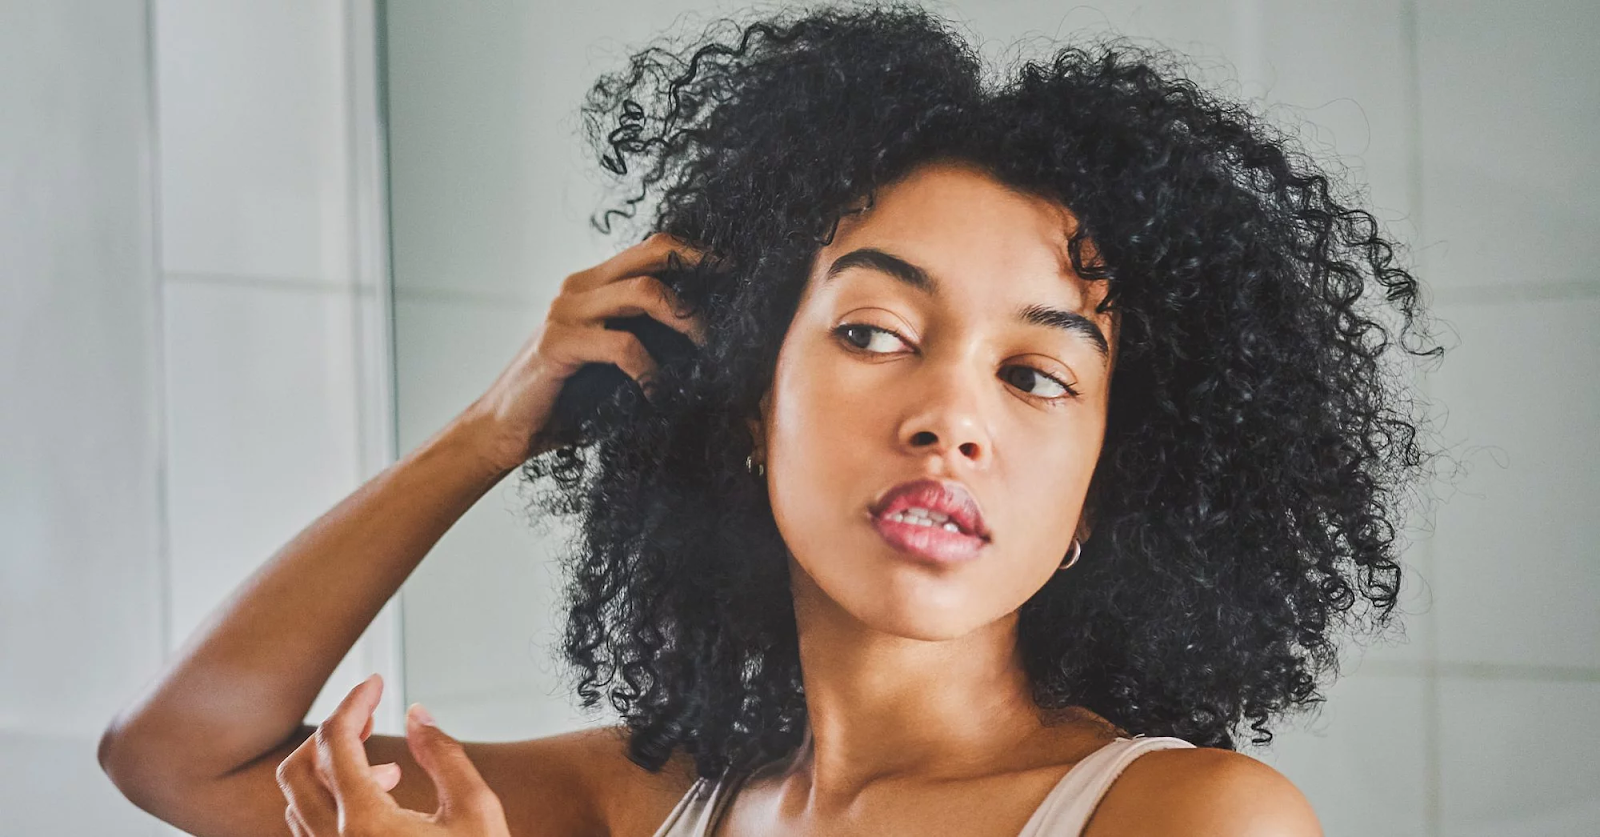 Choosing the right hair care products